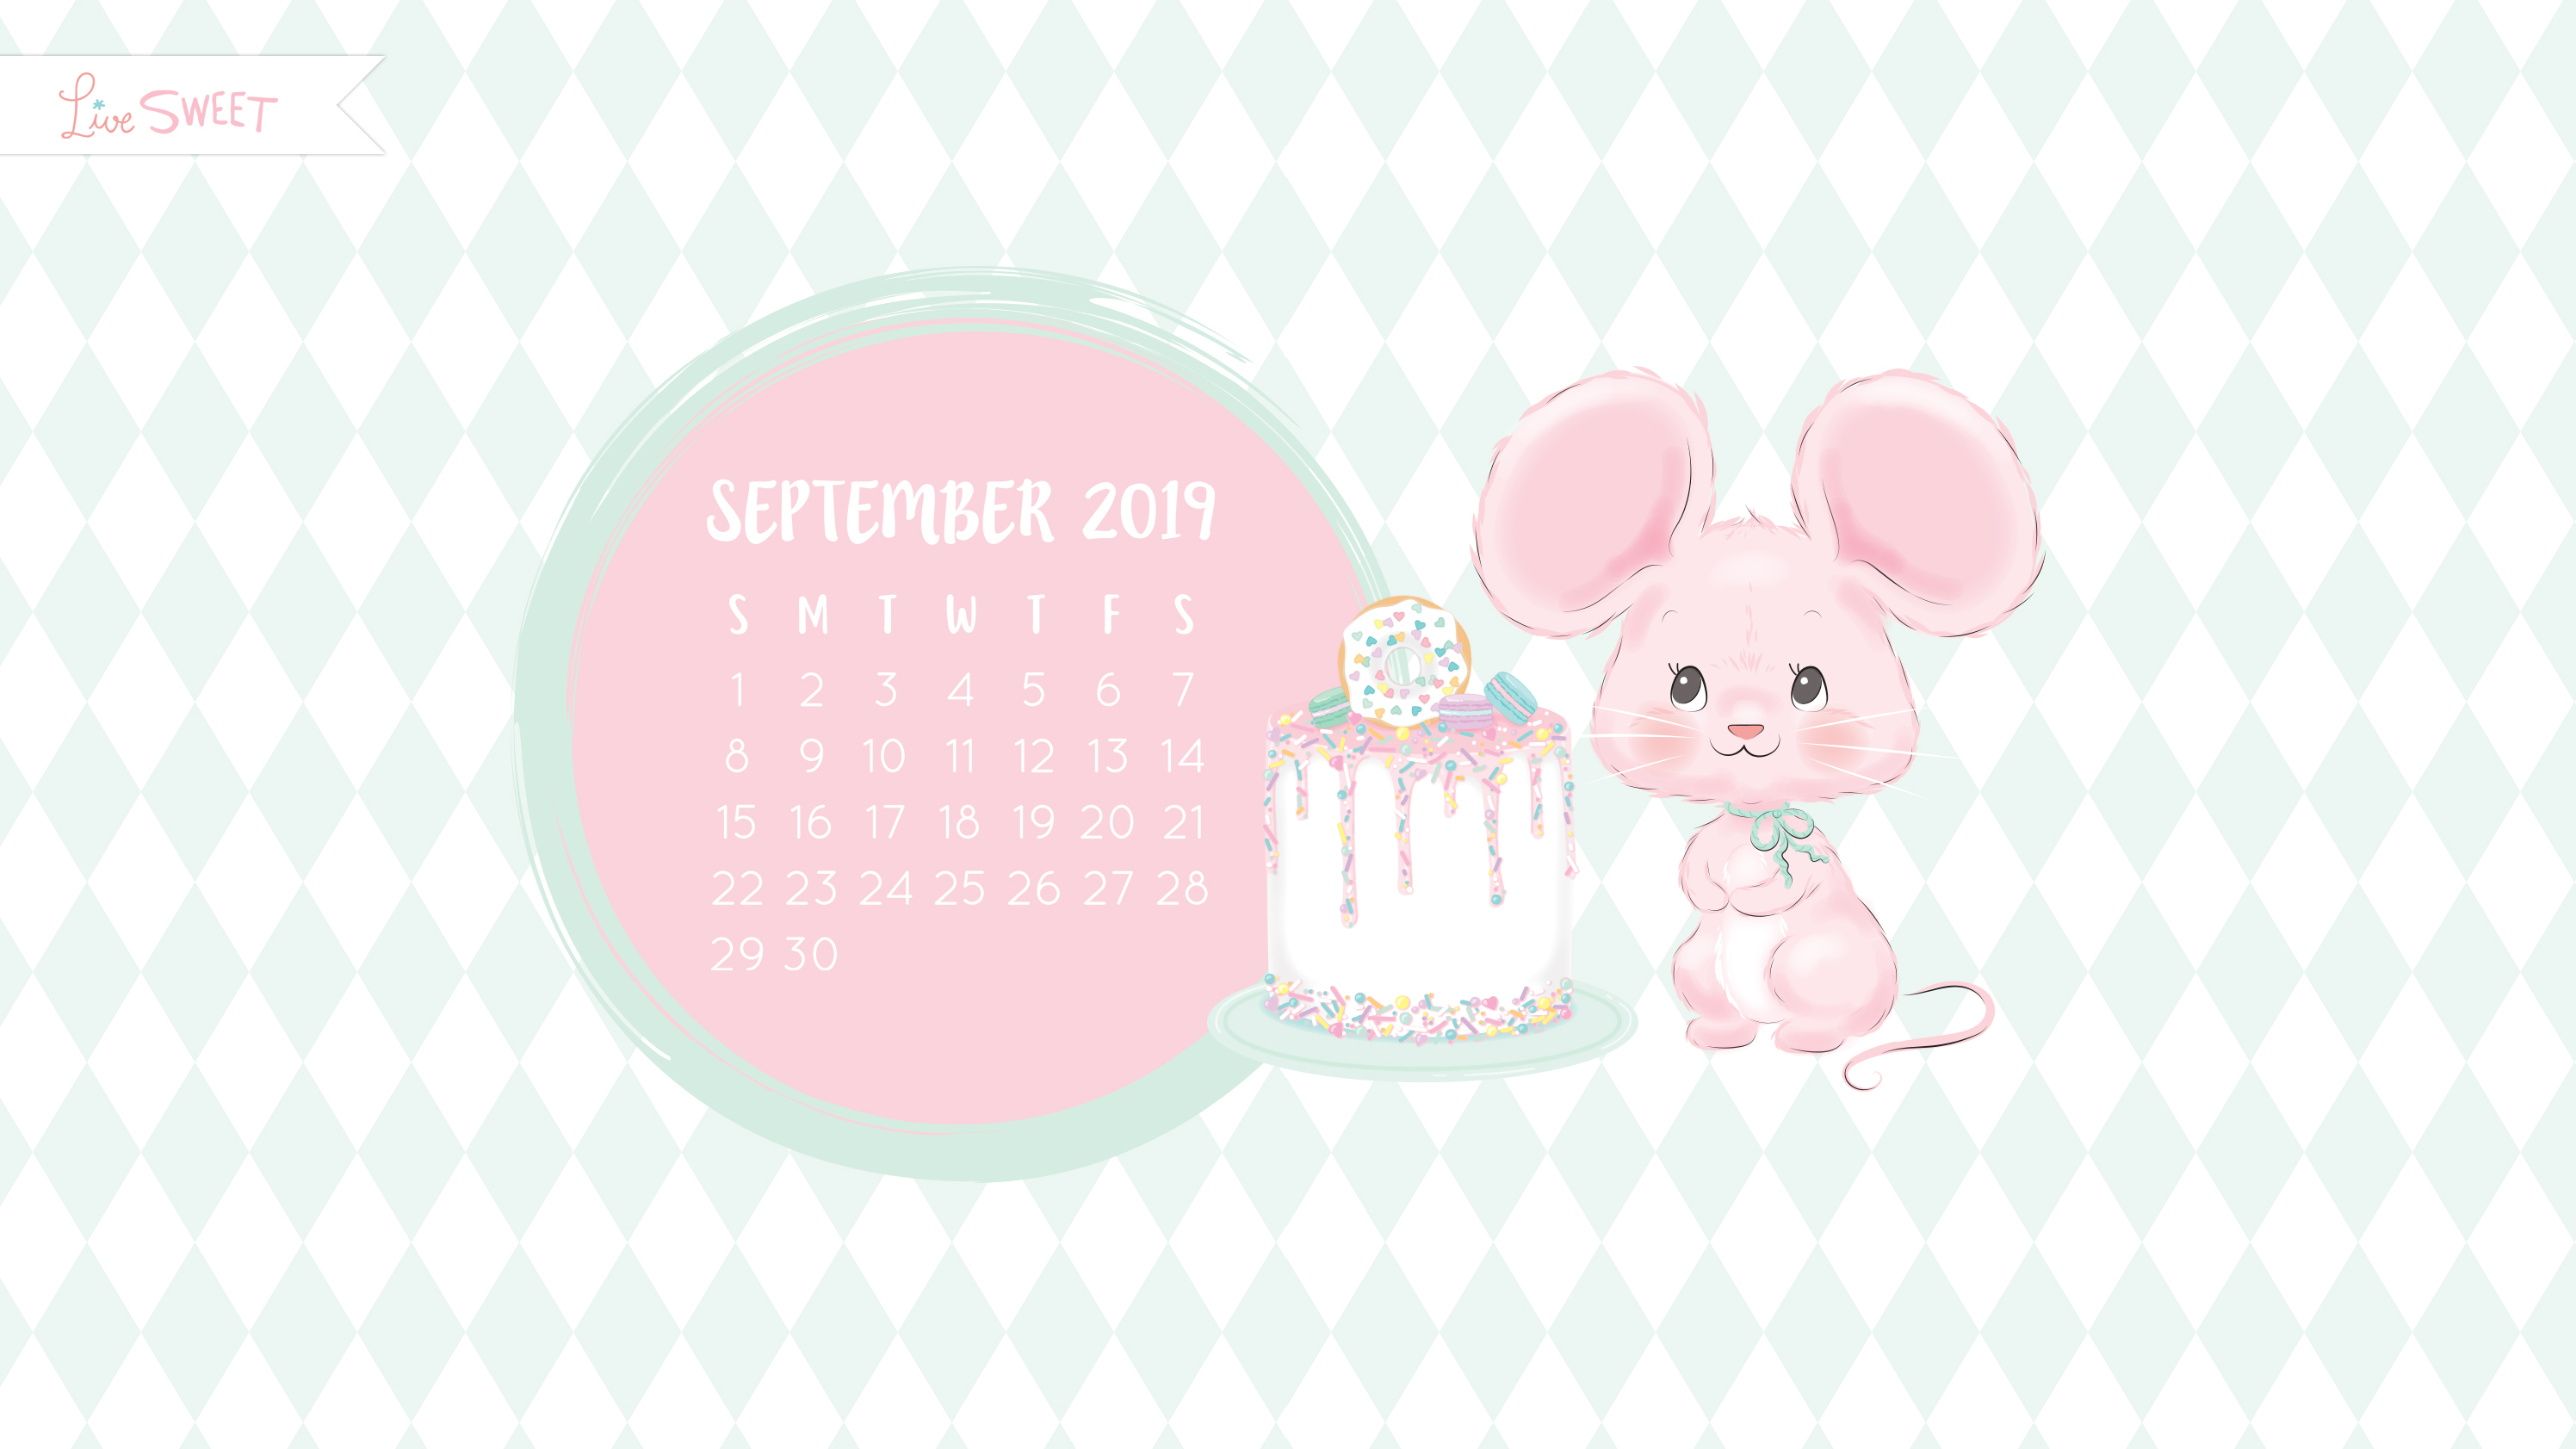 September 2019 Free Wallpapers Live Sweet